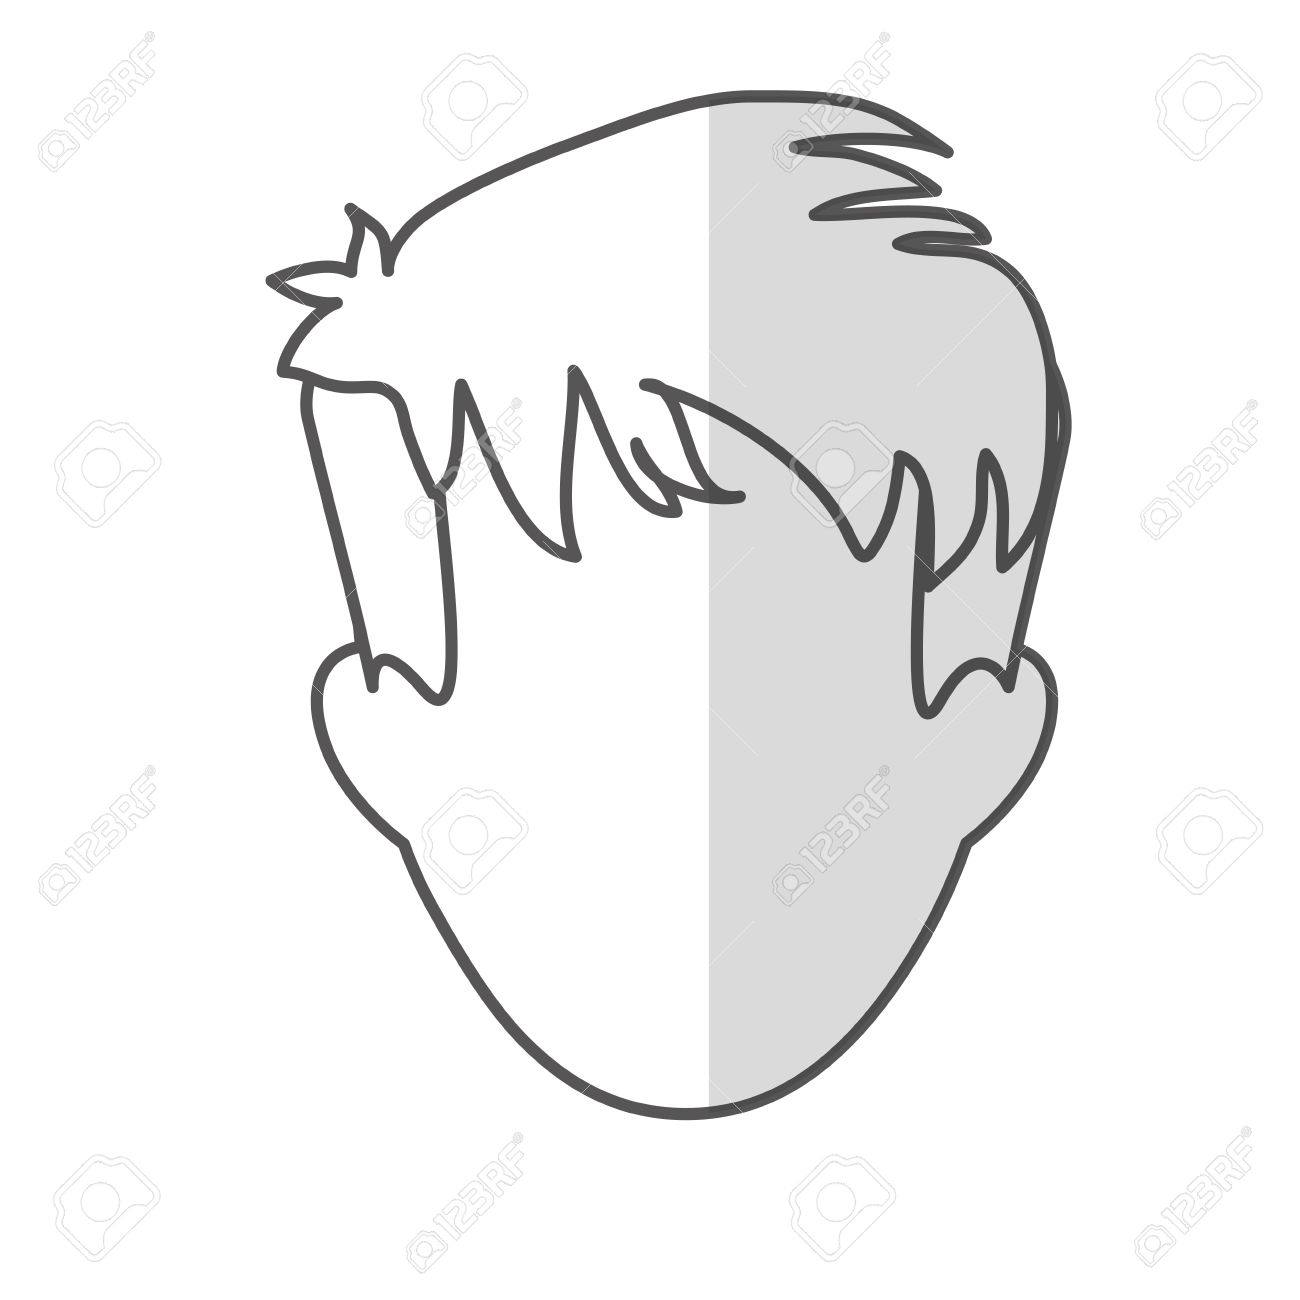 Man With Shaggy Hair Icon Image Vector Illustration Design Royalty.